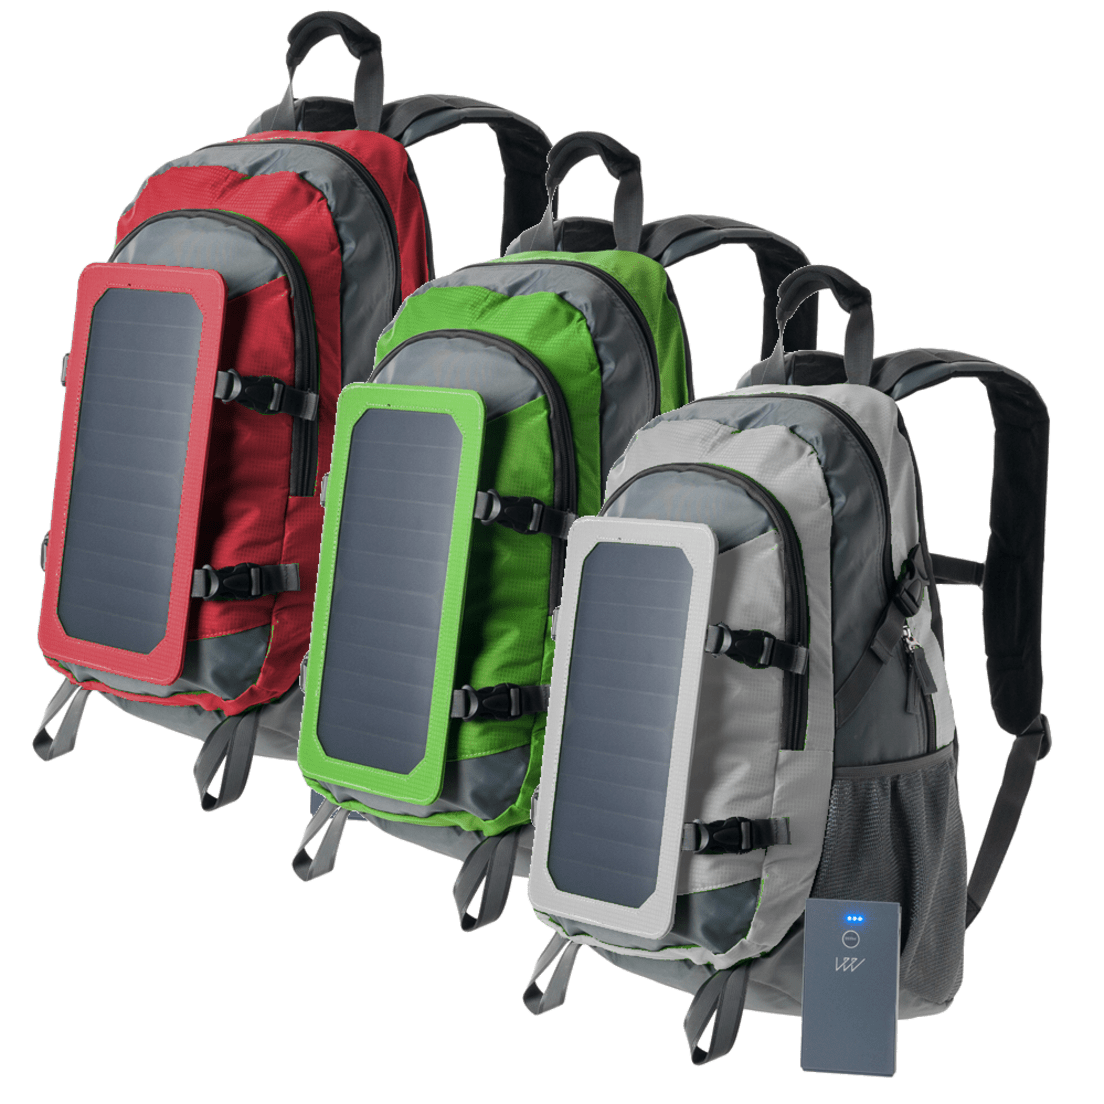 b0d895628576 GatorWire Solar Charging Backpack with 5,000mAh Power Bank